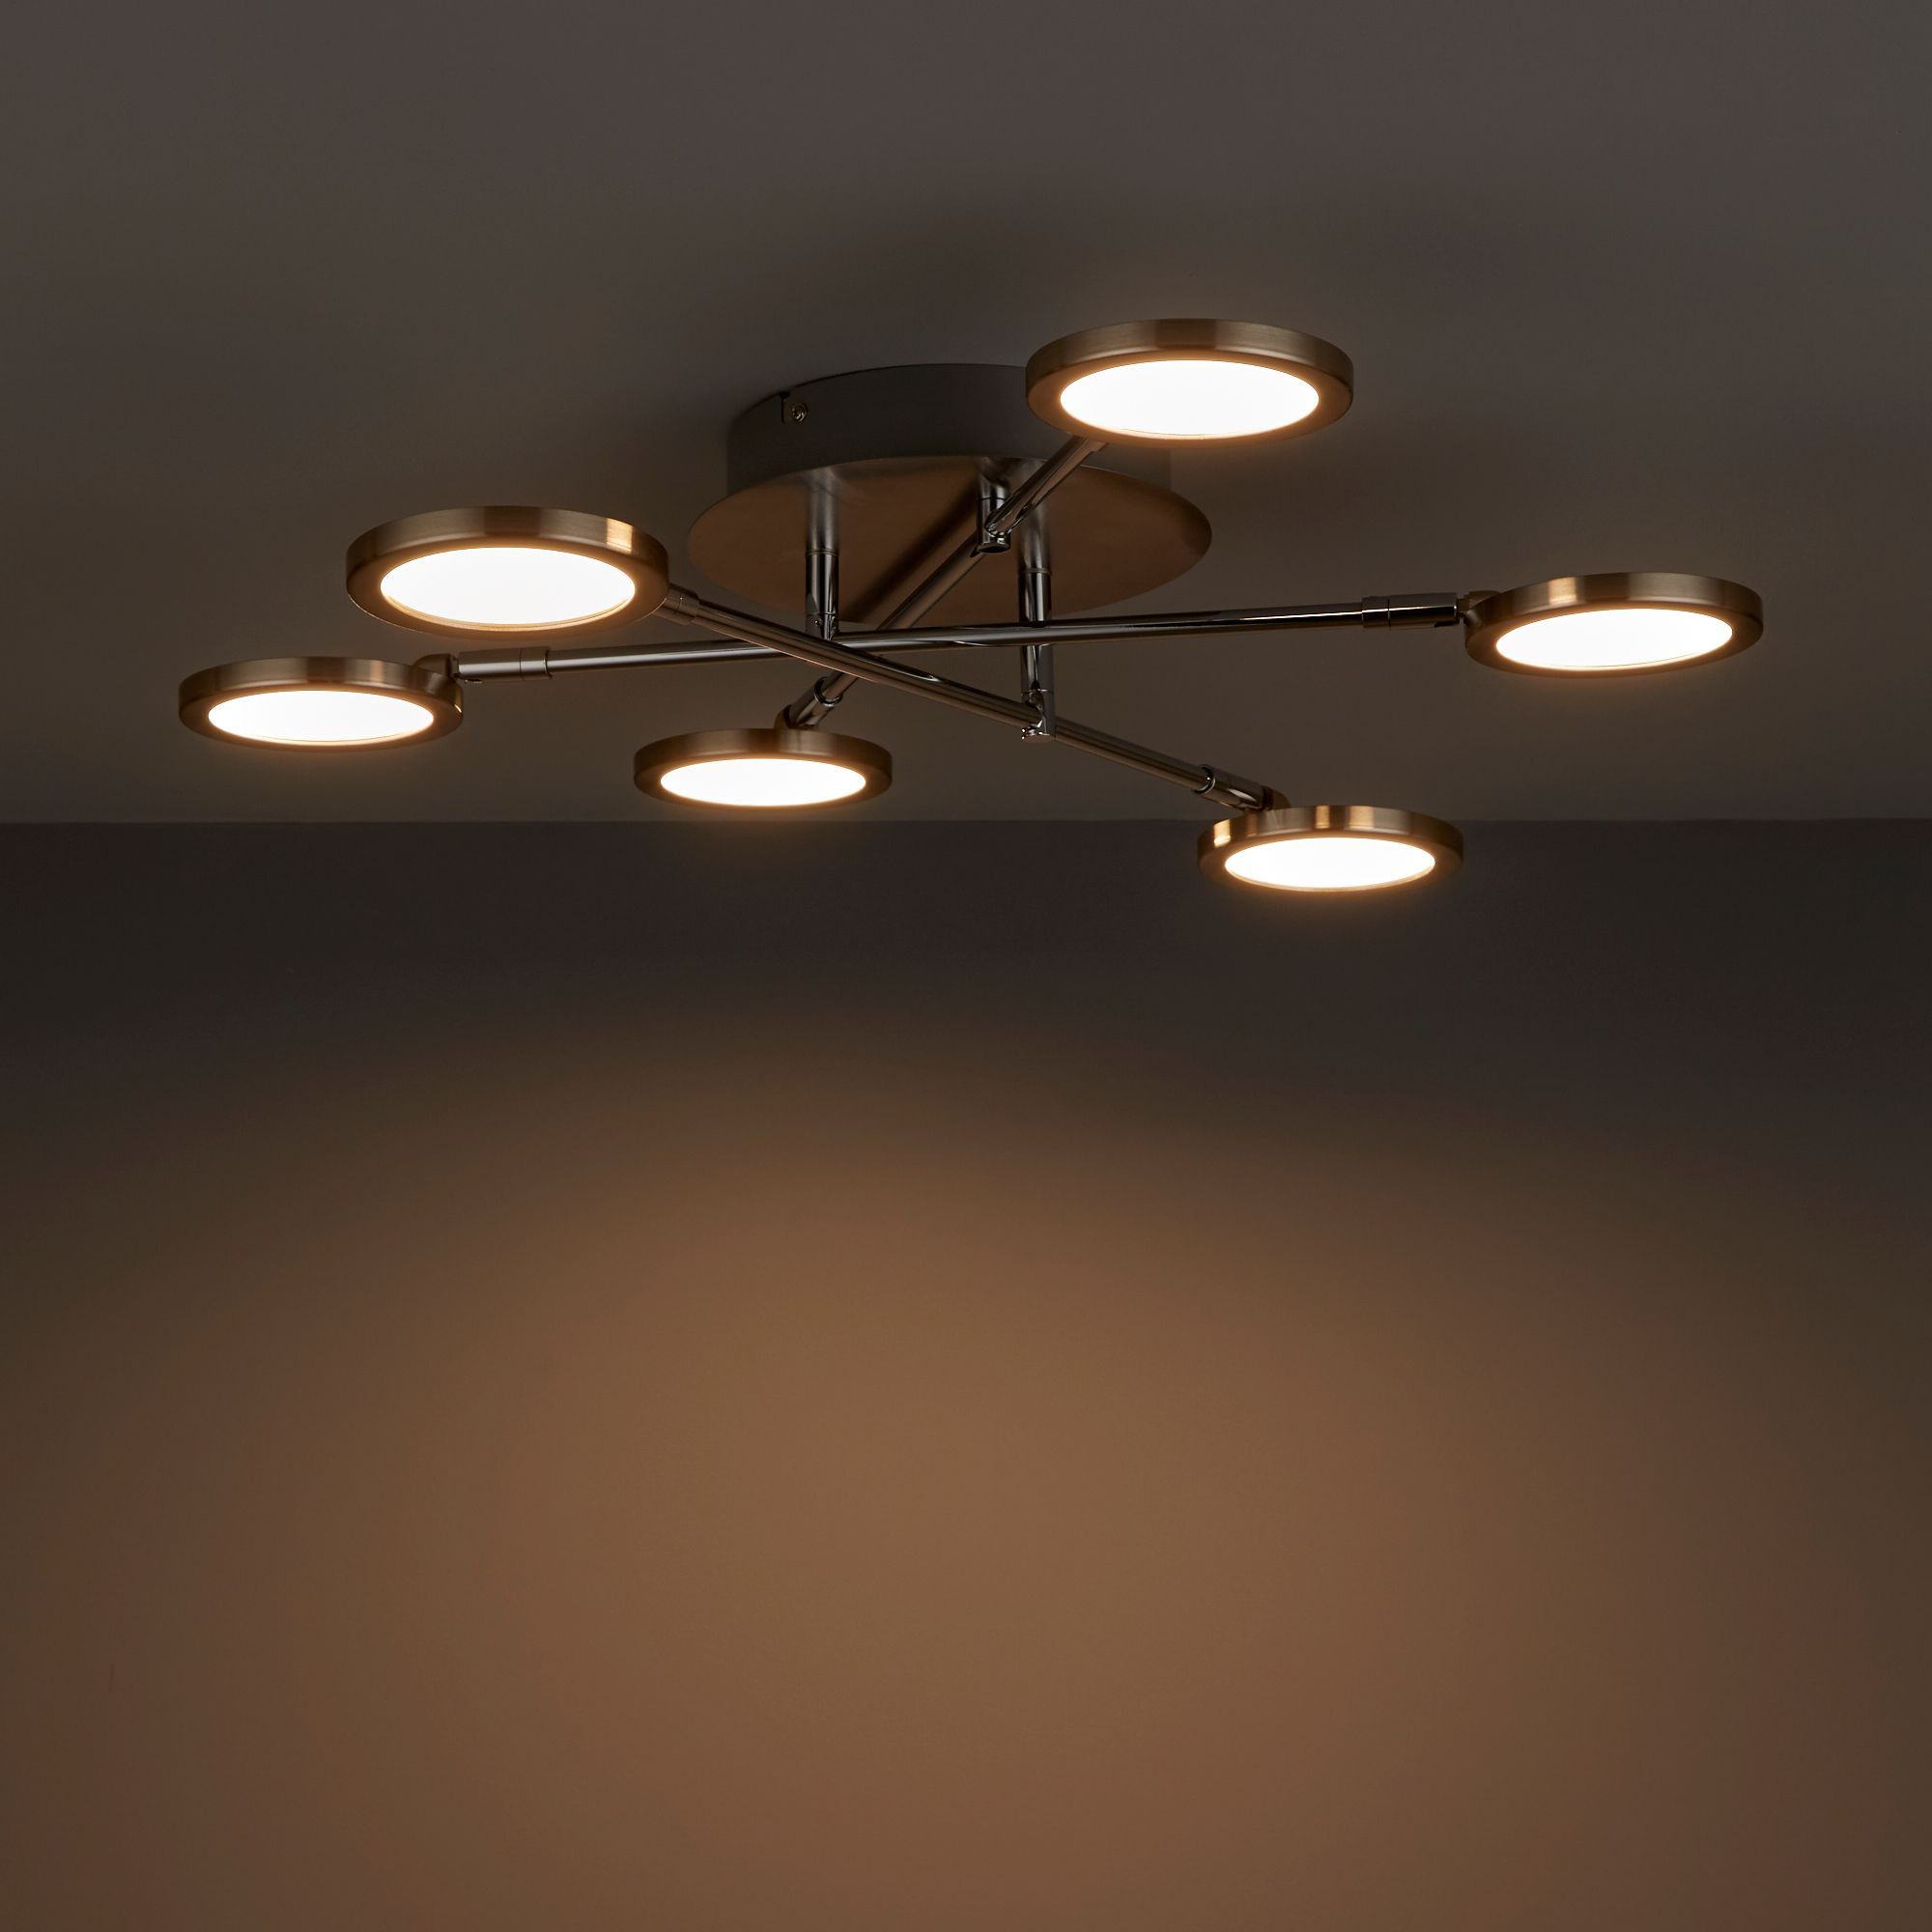 Equium brushed chrome effect 6 lamp ceiling light chrome ceiling equium brushed chrome effect 6 lamp ceiling light aloadofball Gallery